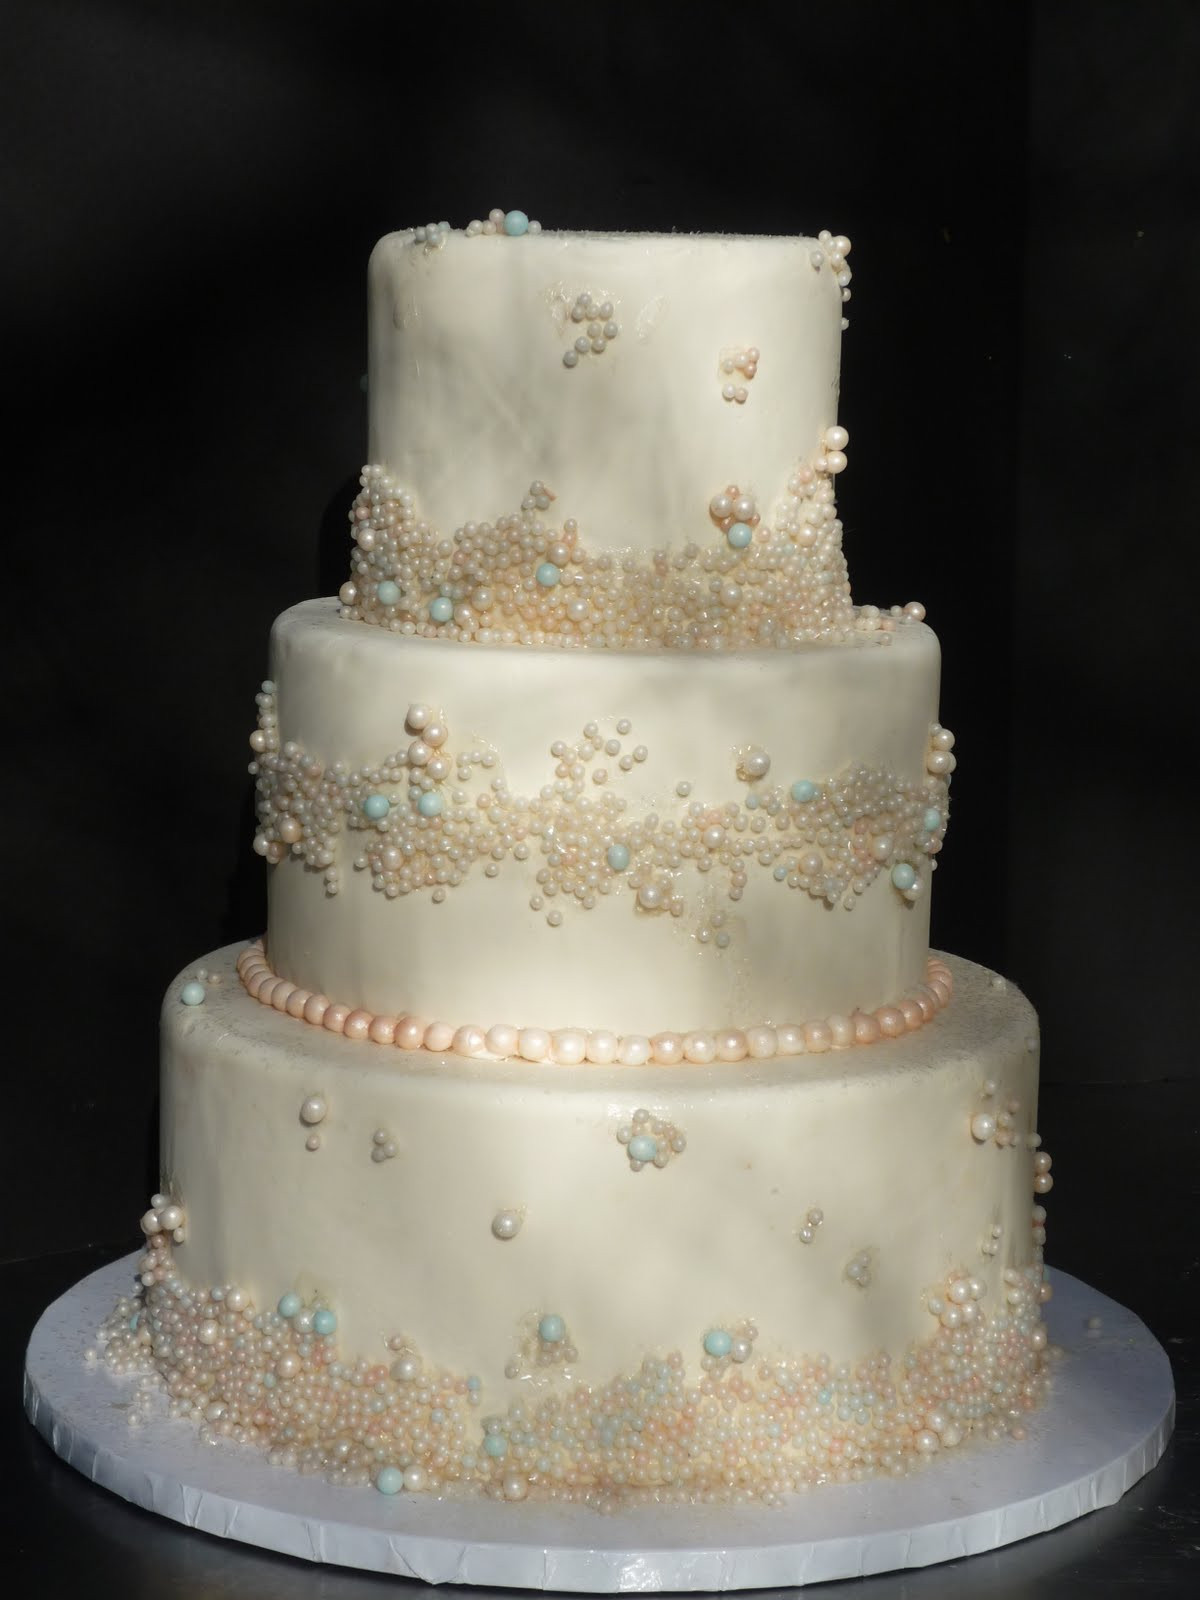 Wedding Cakes With Fondant  Artisan Bake Shop Wedding Cake Fondant Tiers with Pearls